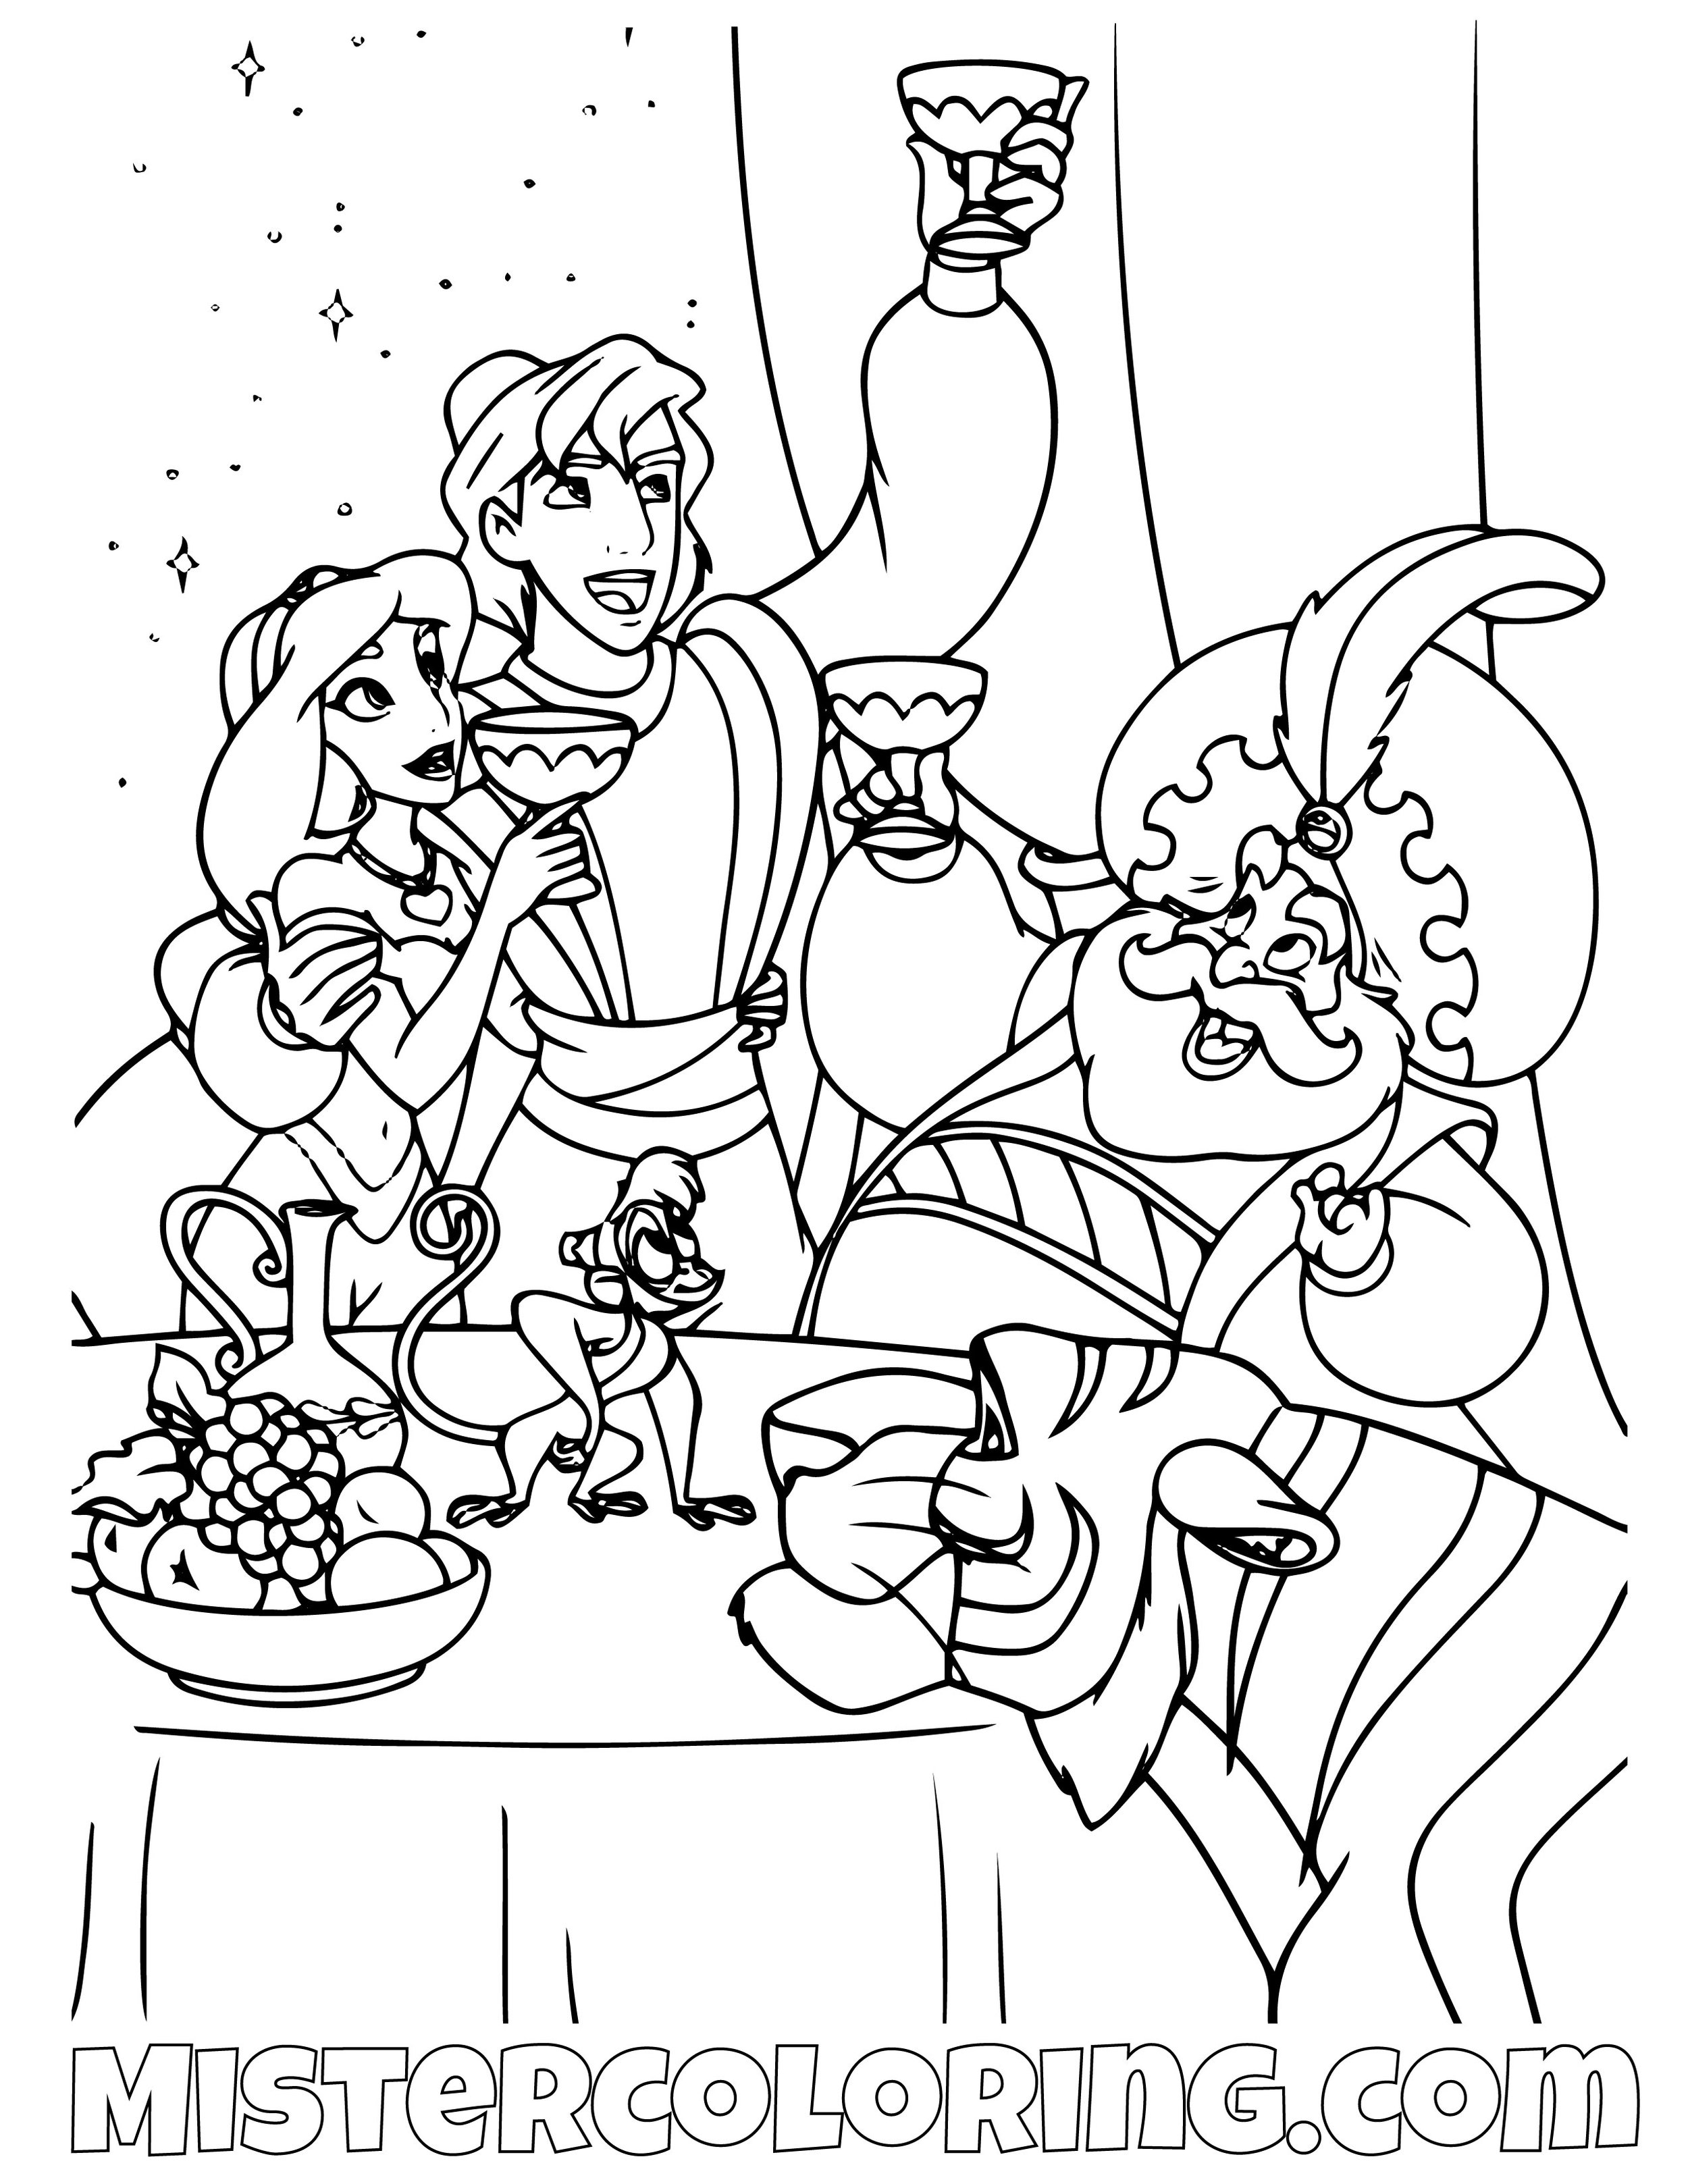 Aladdin Princess Jasmine The Sultan Abu And Rajah Aladdin Coloring Page